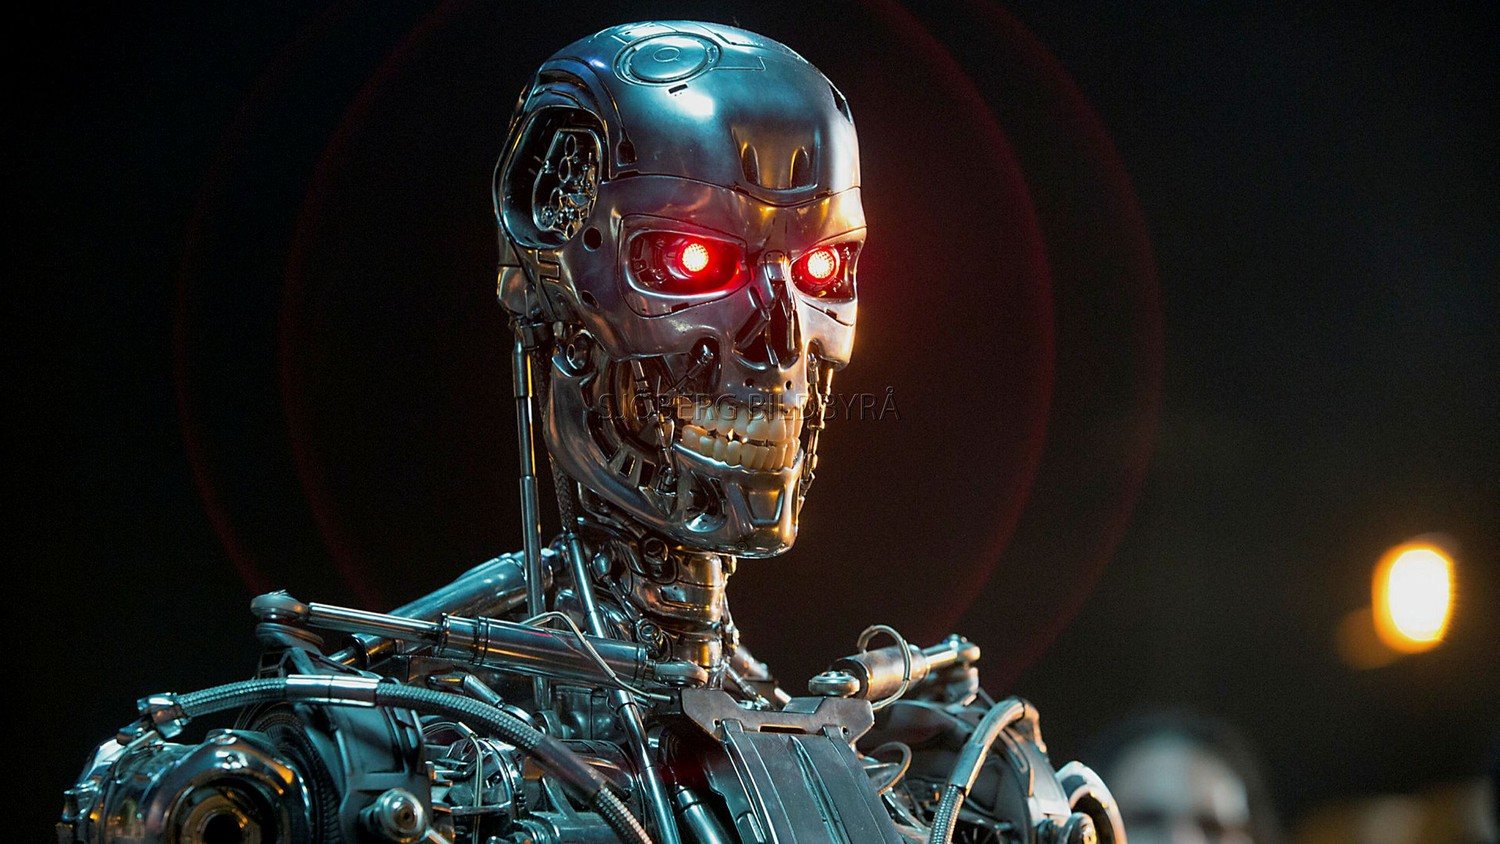 Terminator to be humans will not be able to control artificial intelligence